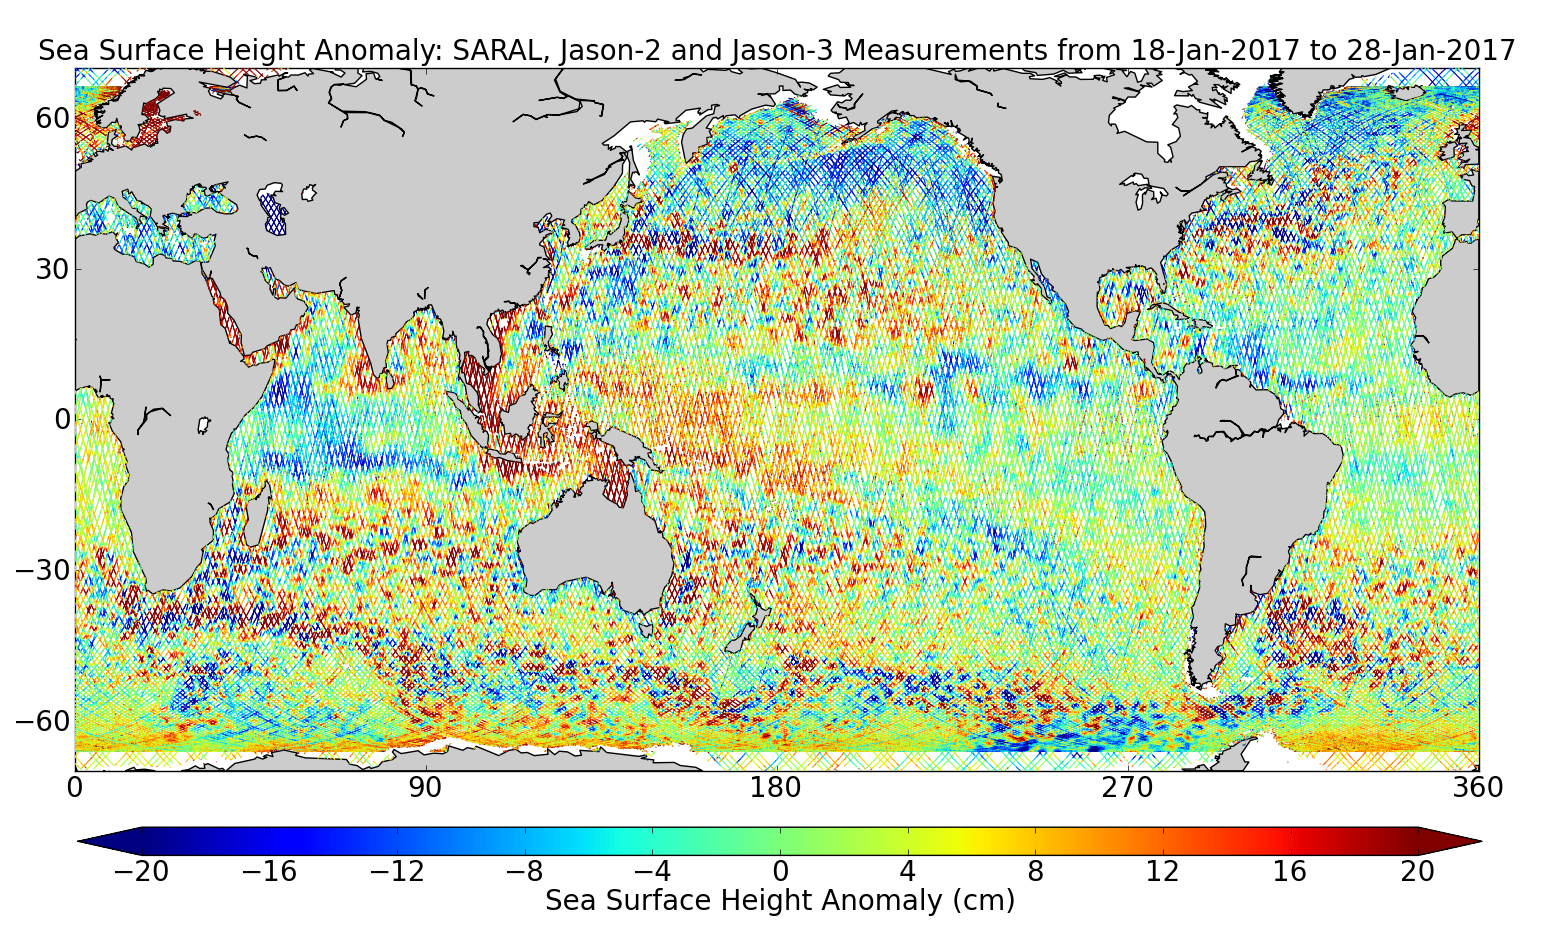 Sea Surface Height Anomaly: SARAL, Jason-2 and Jason-3 Measurements from 18-Jan-2017 to 28-Jan-2017